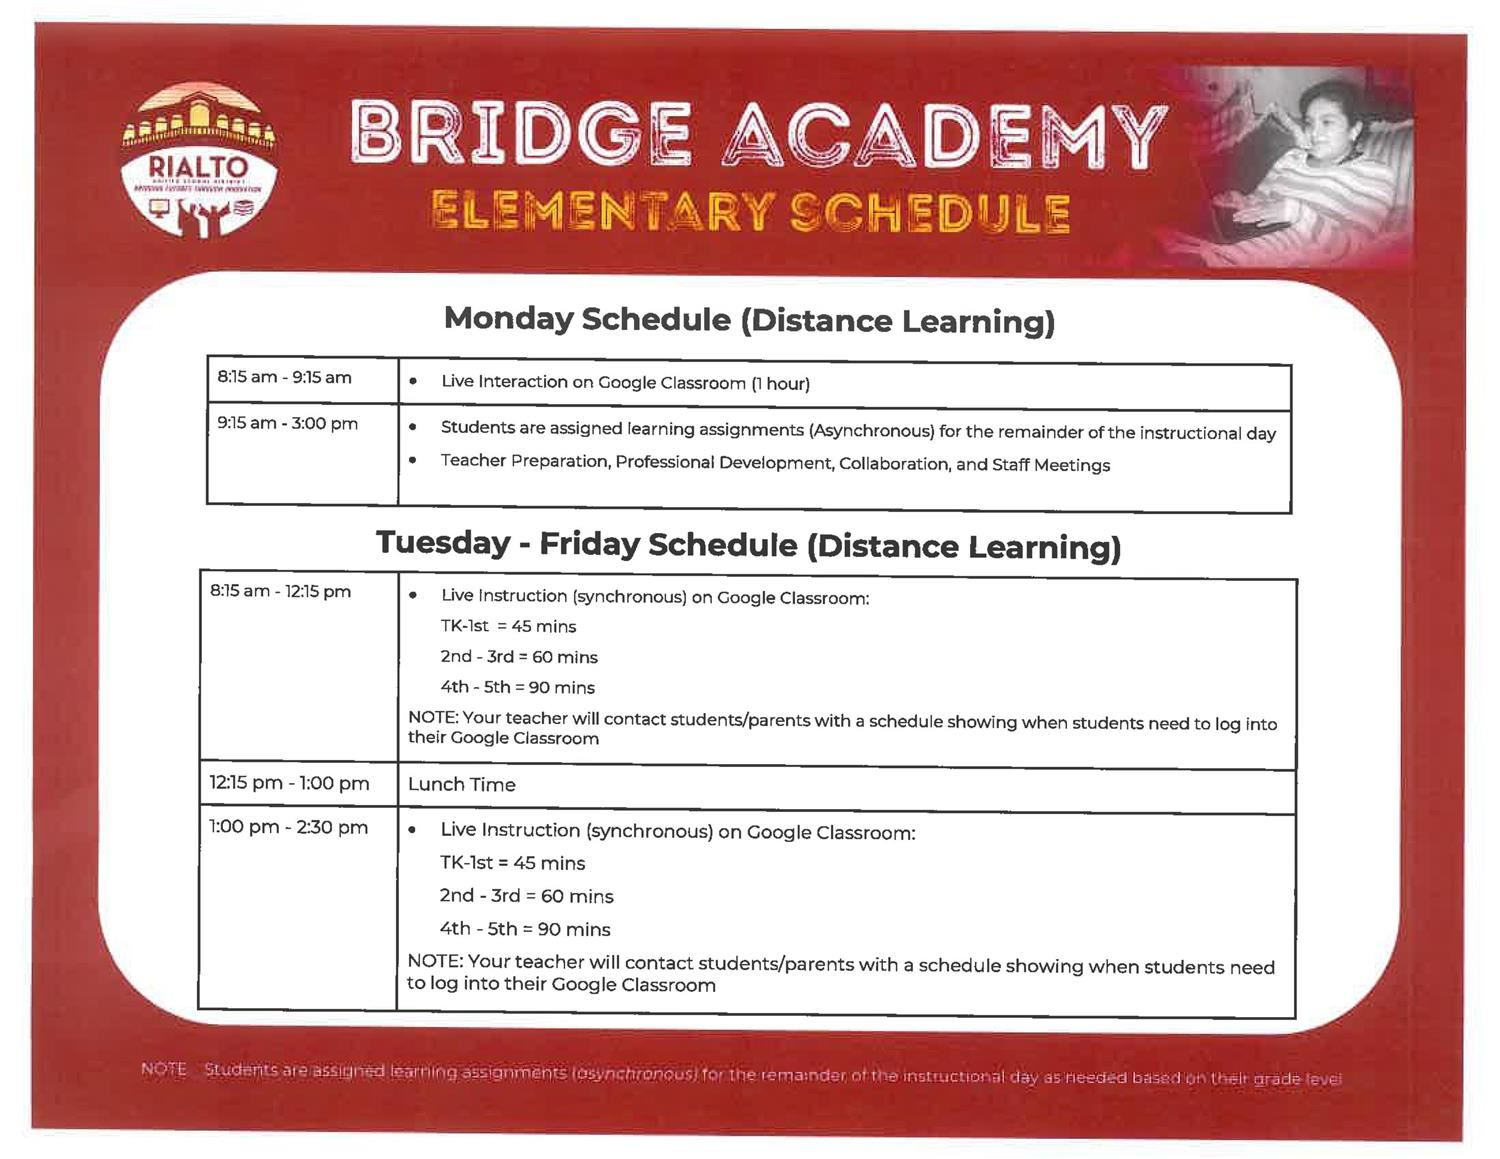 Bridge Academy Elementary Schedule